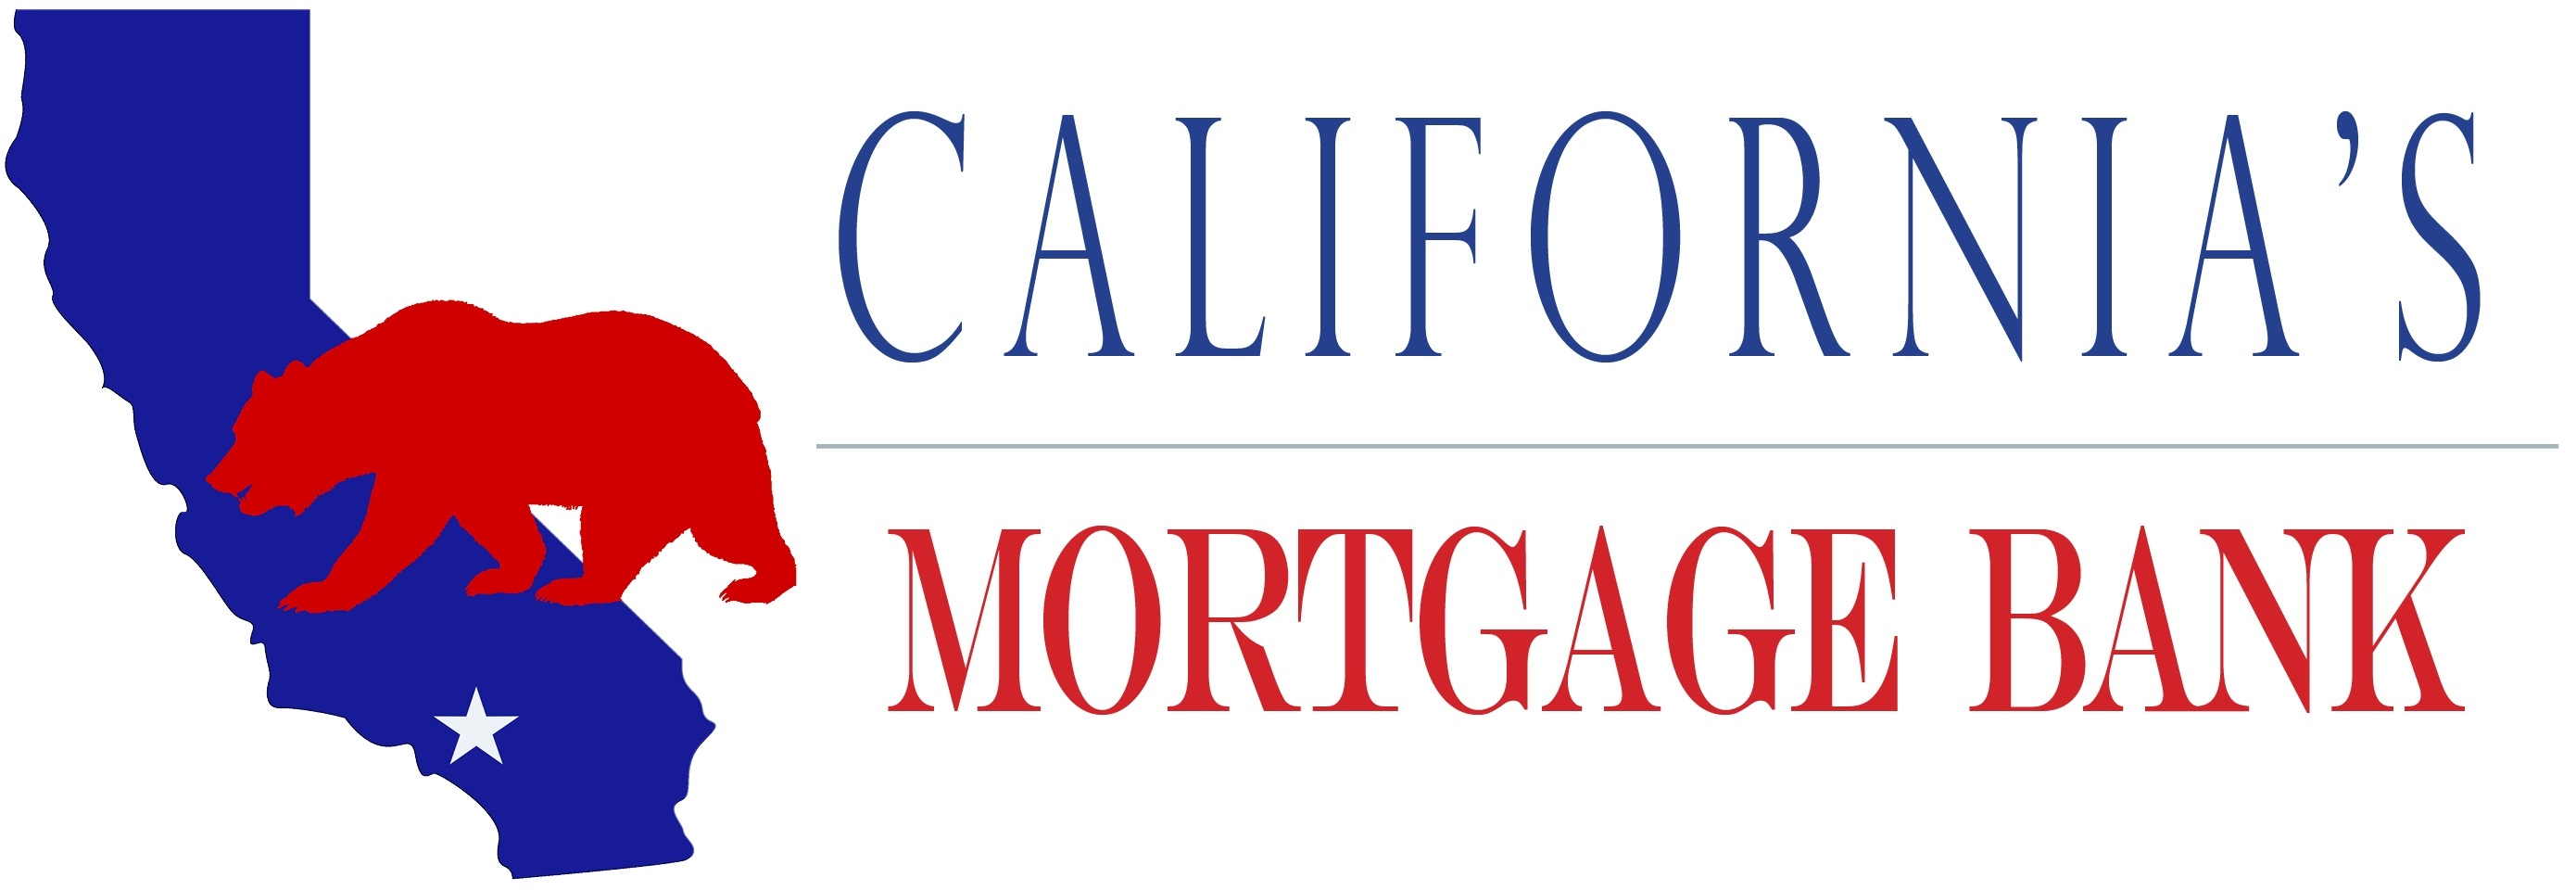 California's Mortgage Bank